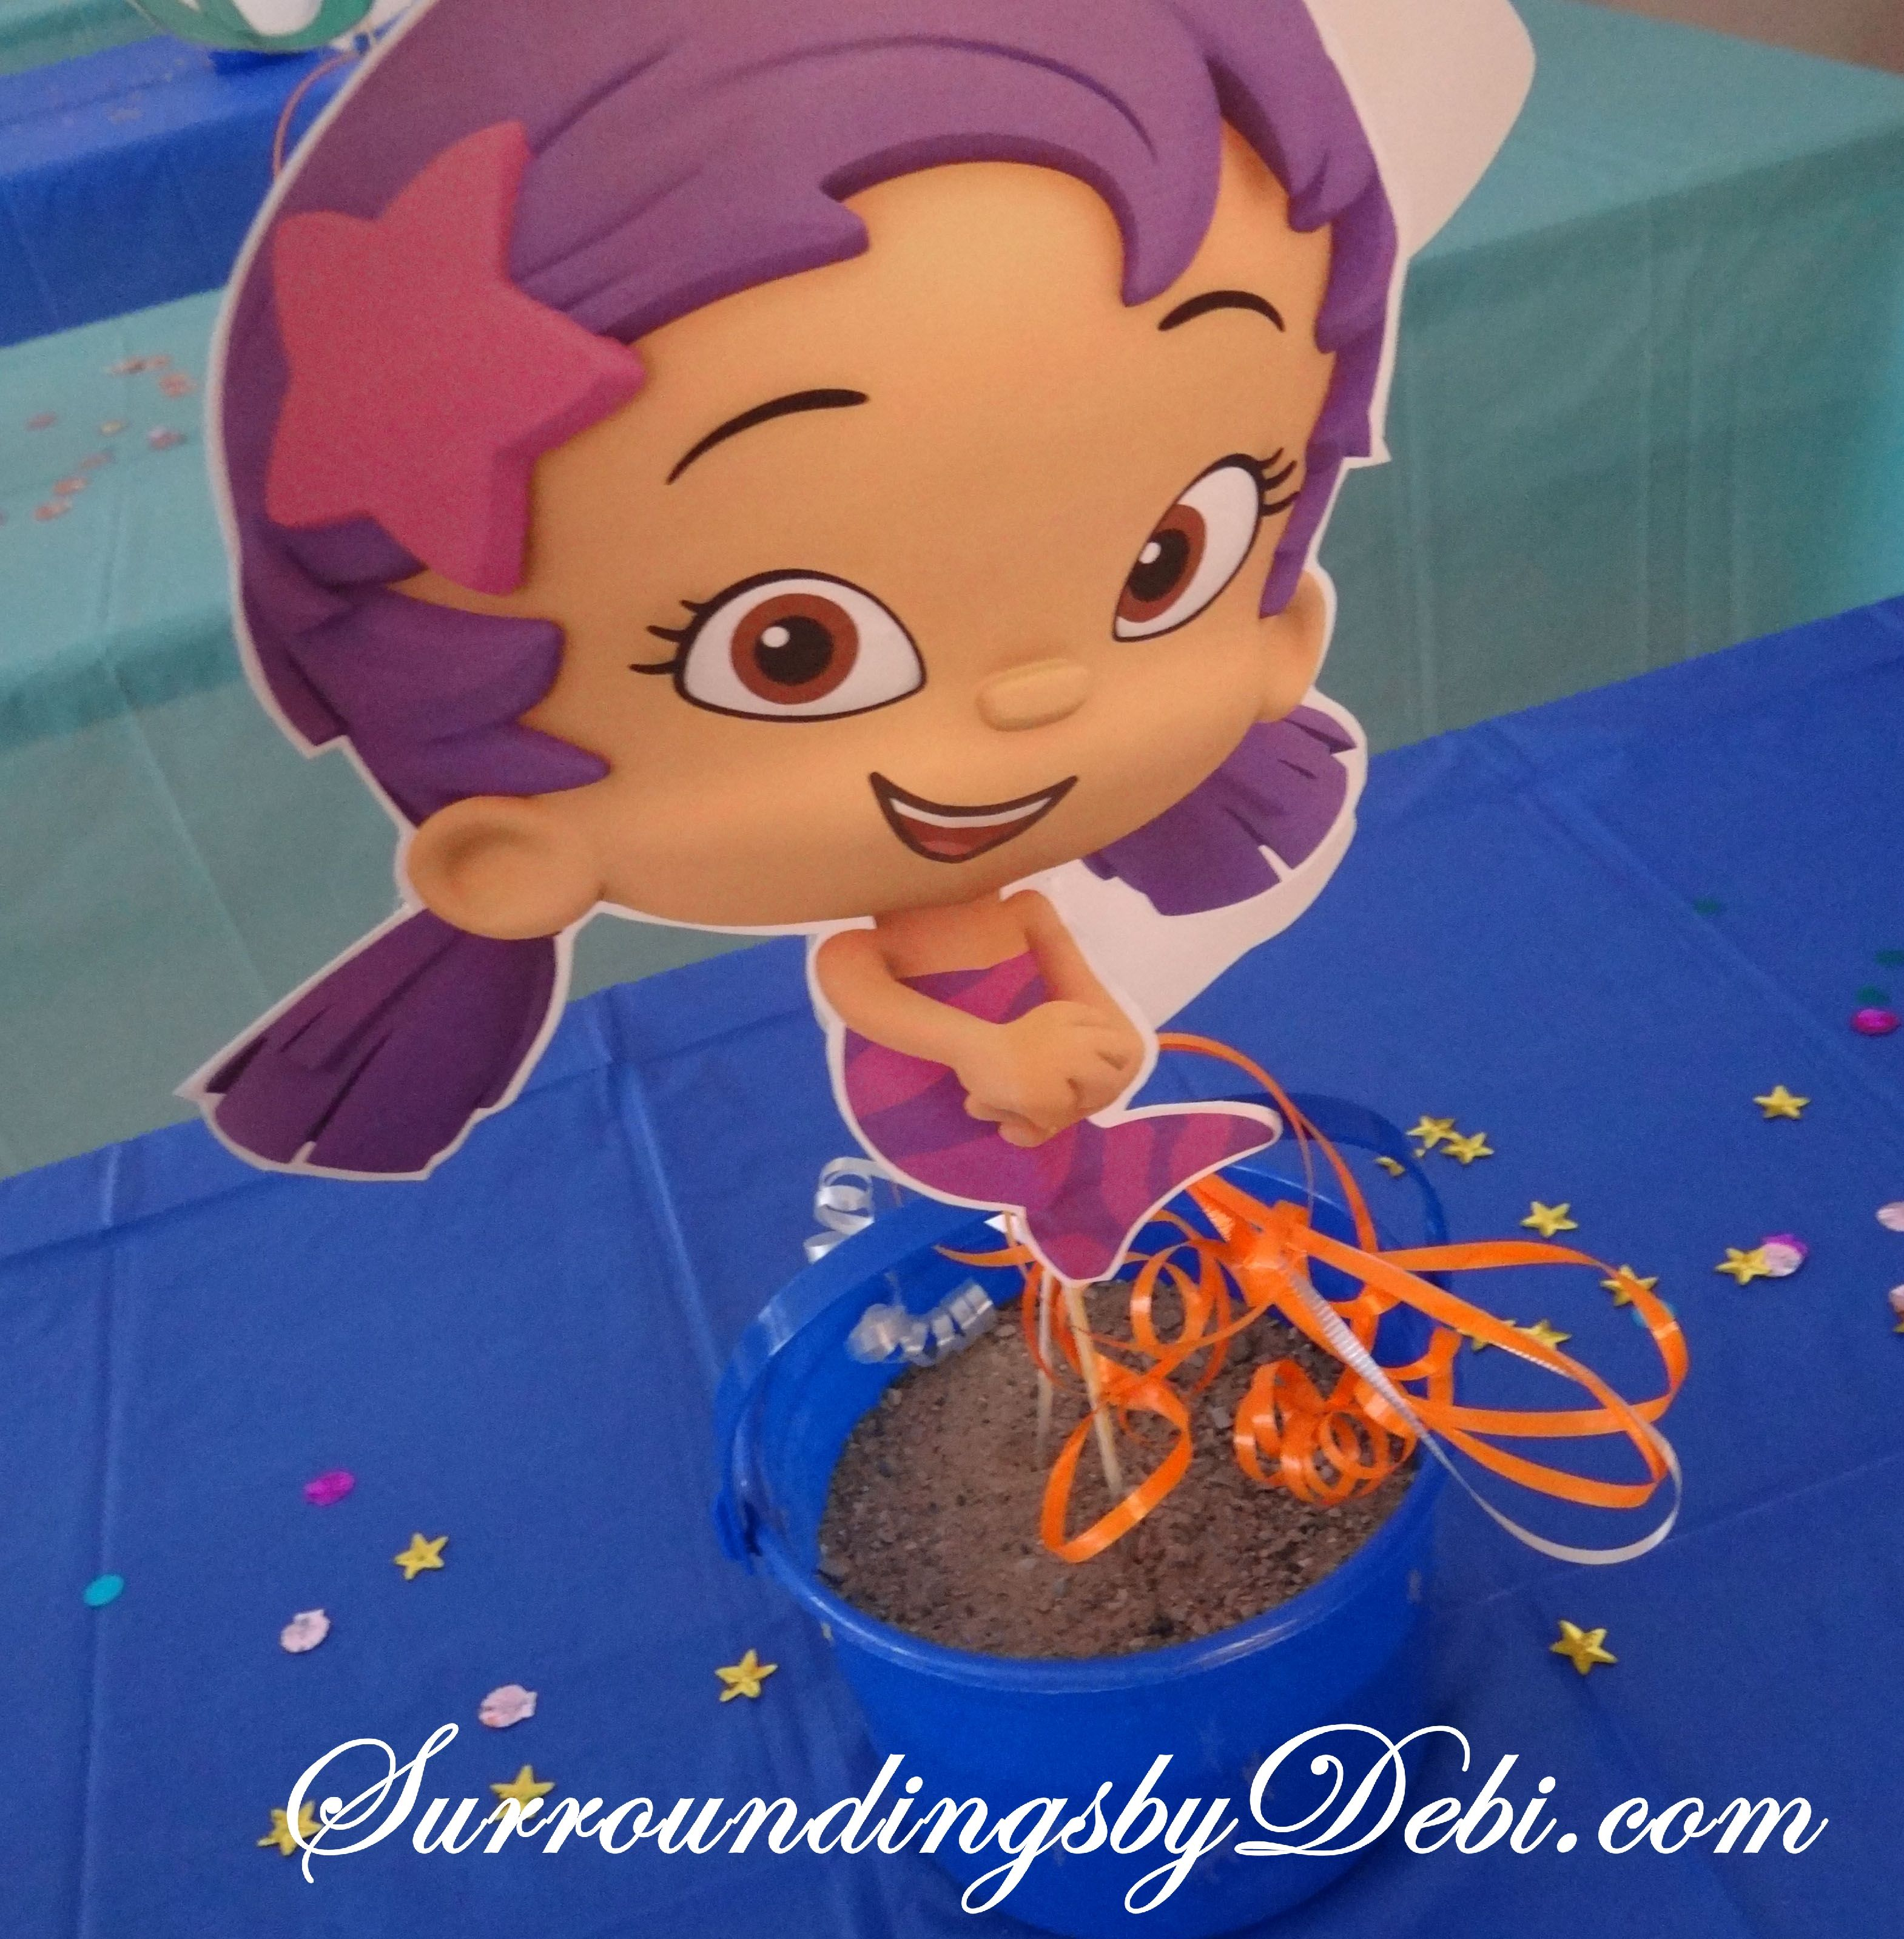 Bubble Guppies / Ariel Birthday Party! Lets Celebrate!